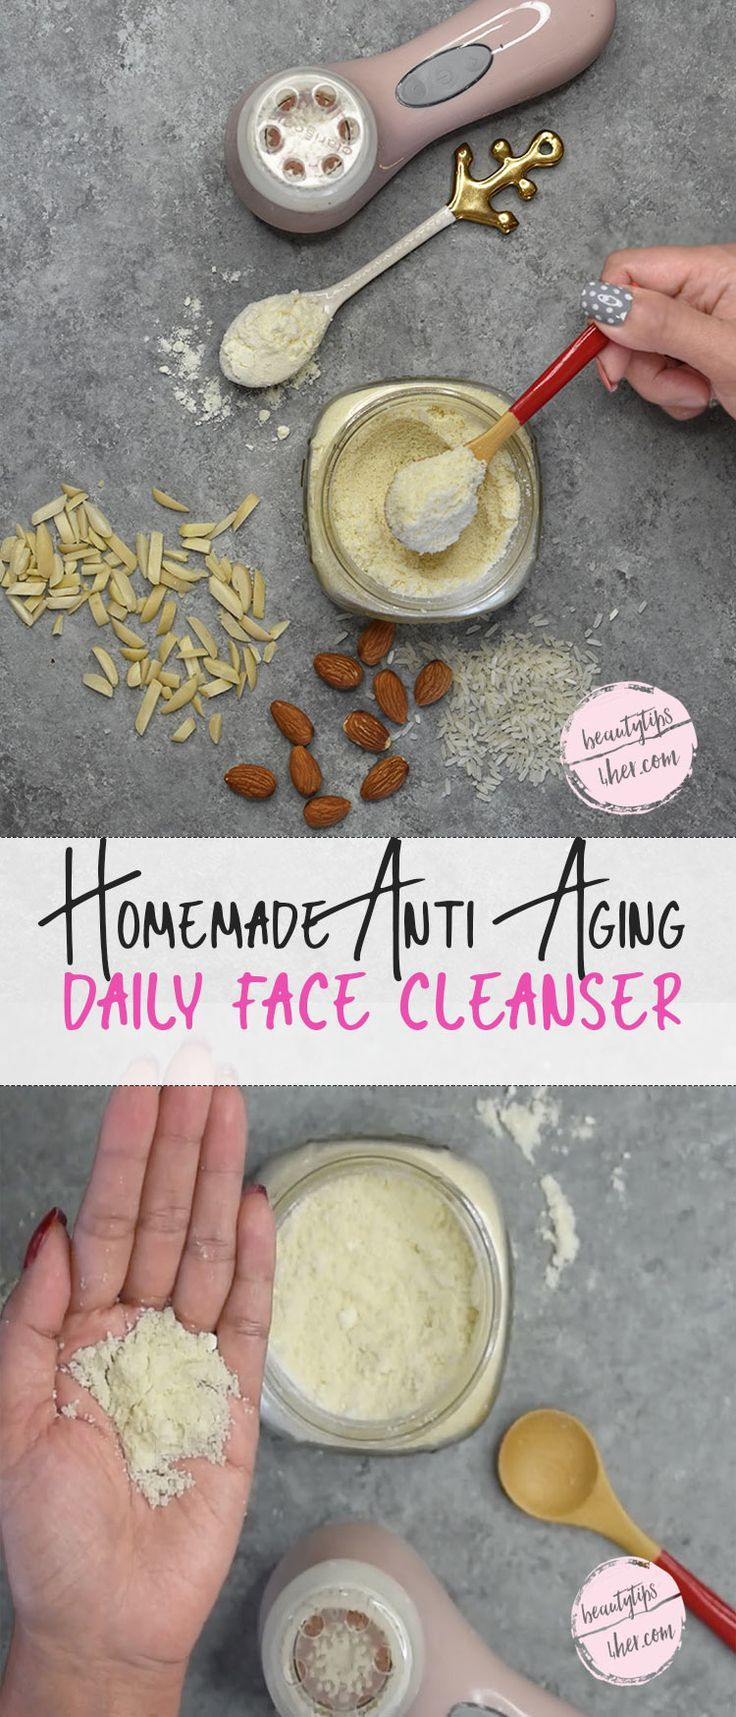 This homemade face cleanser not only moisturizes the skin, it also exfoliates it...